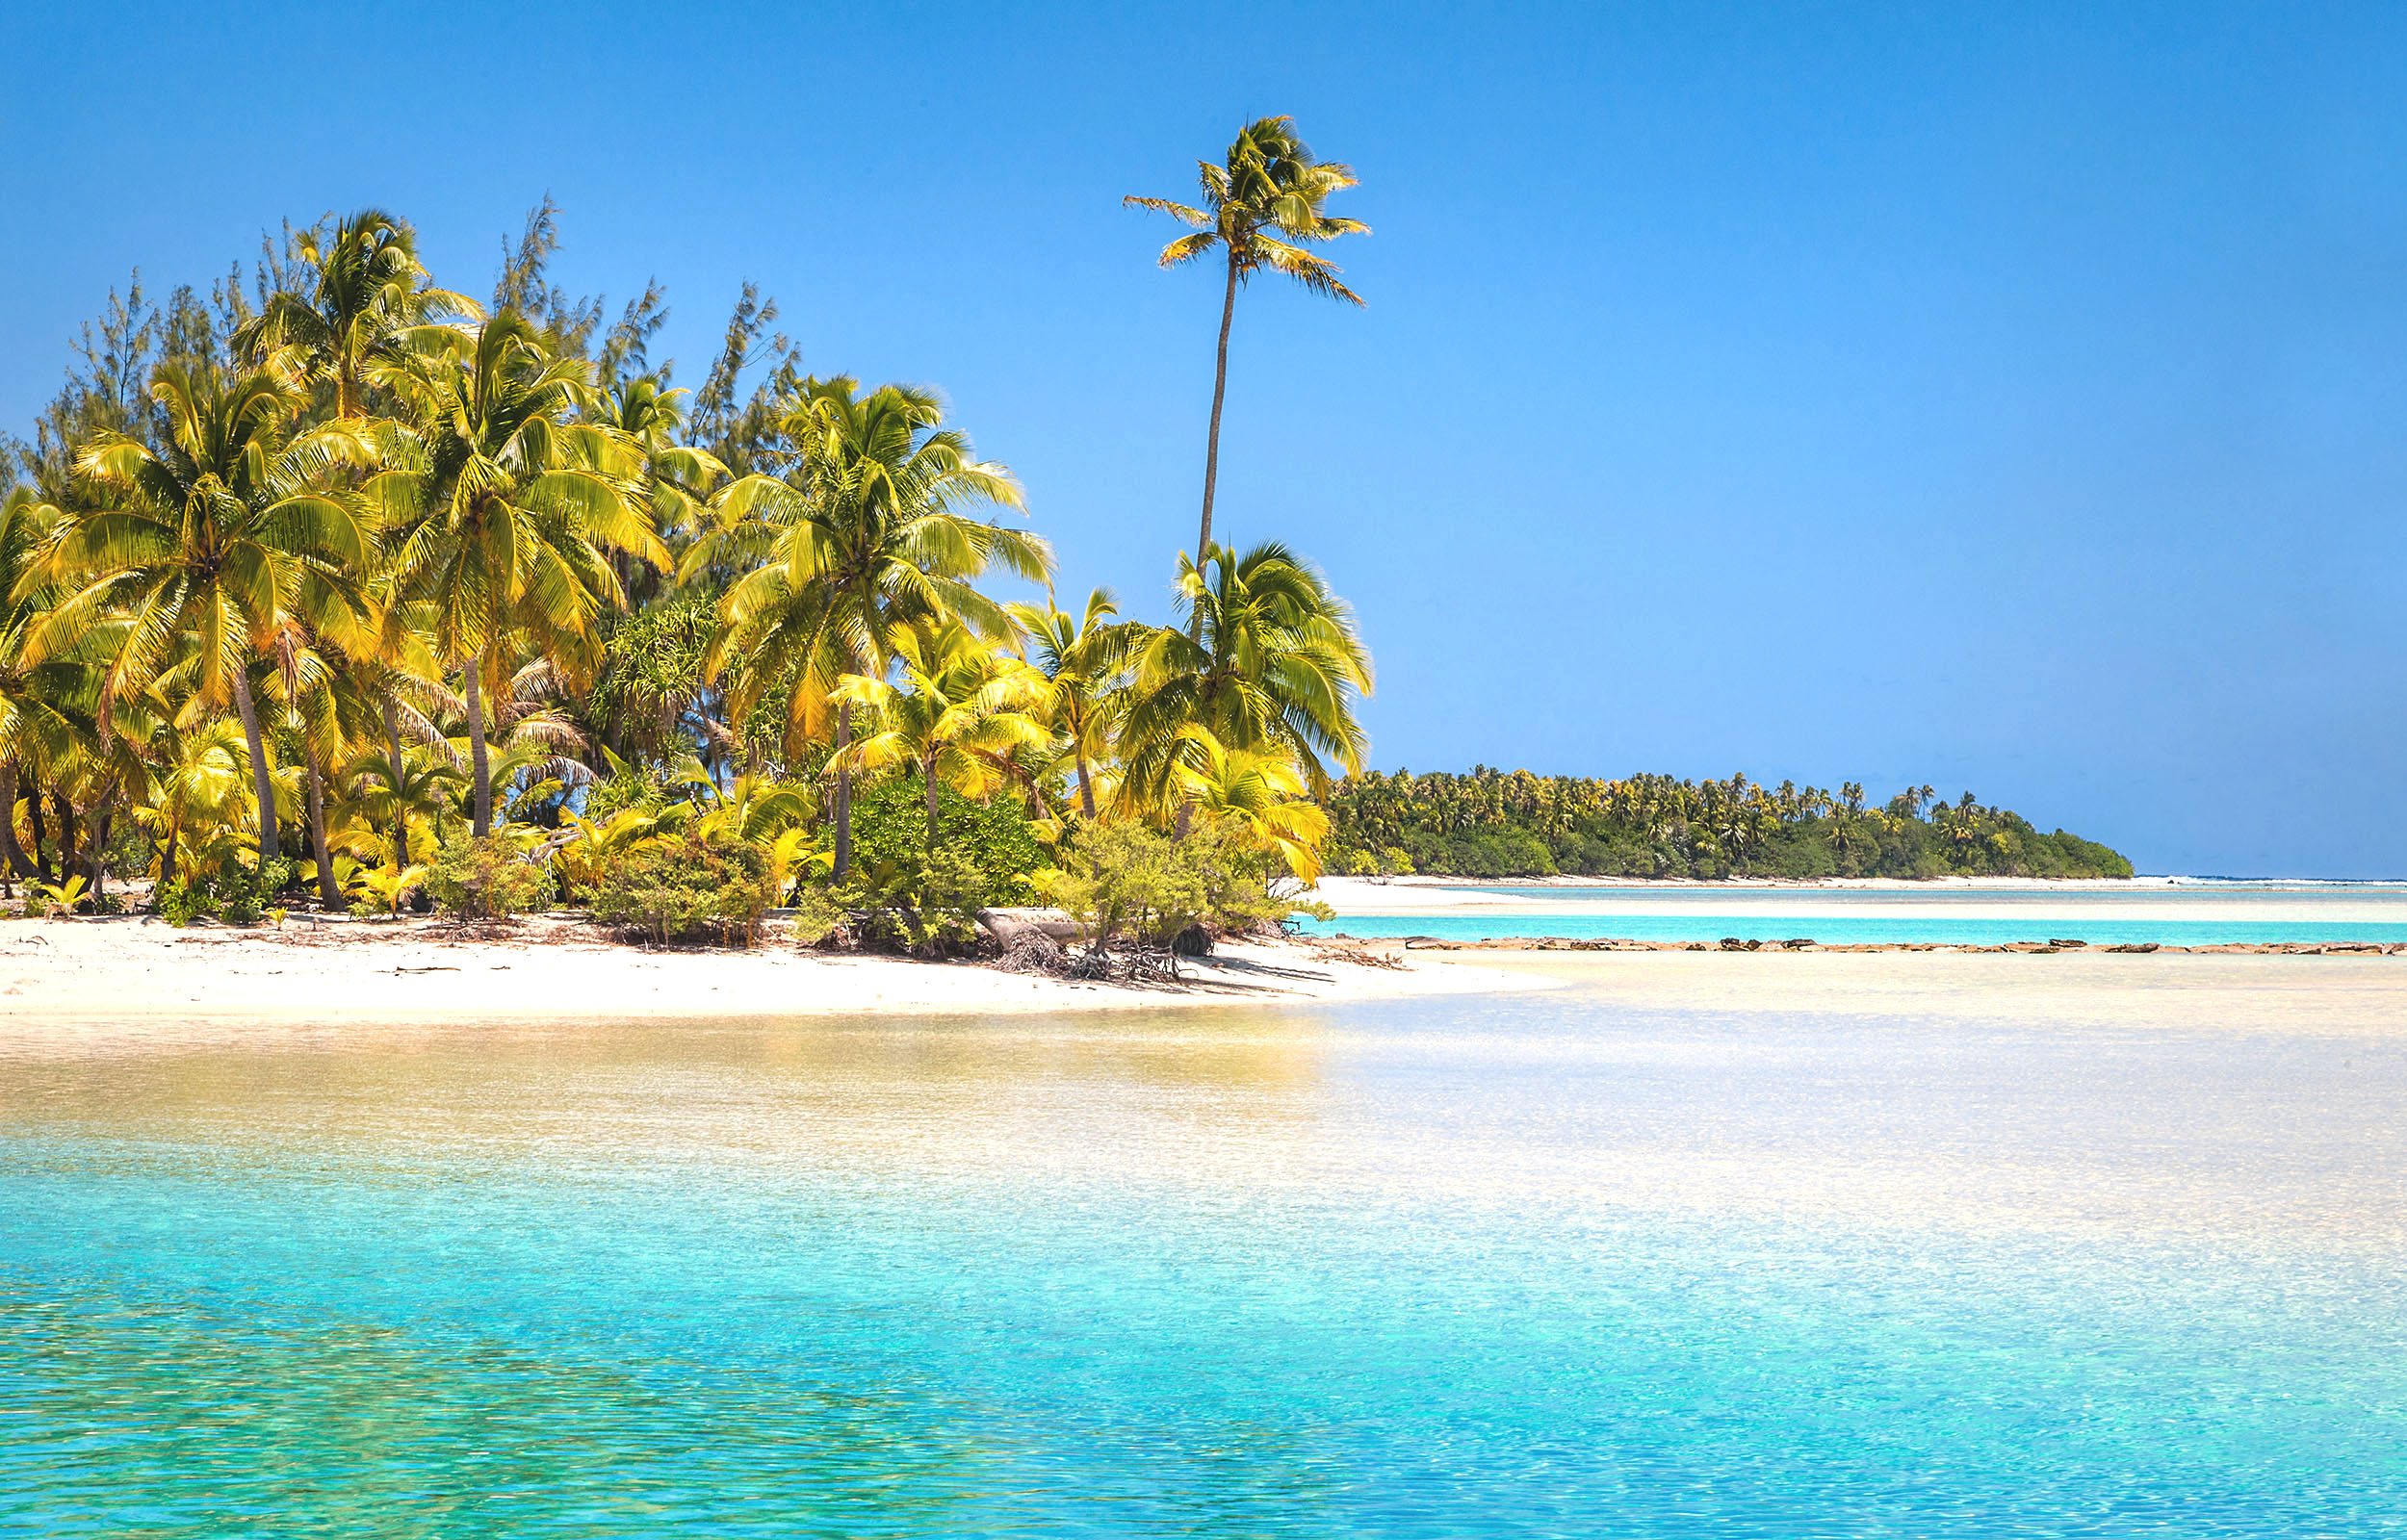 A couple of very blue inlets with sandy white beaches and palm trees in the Cook Islands